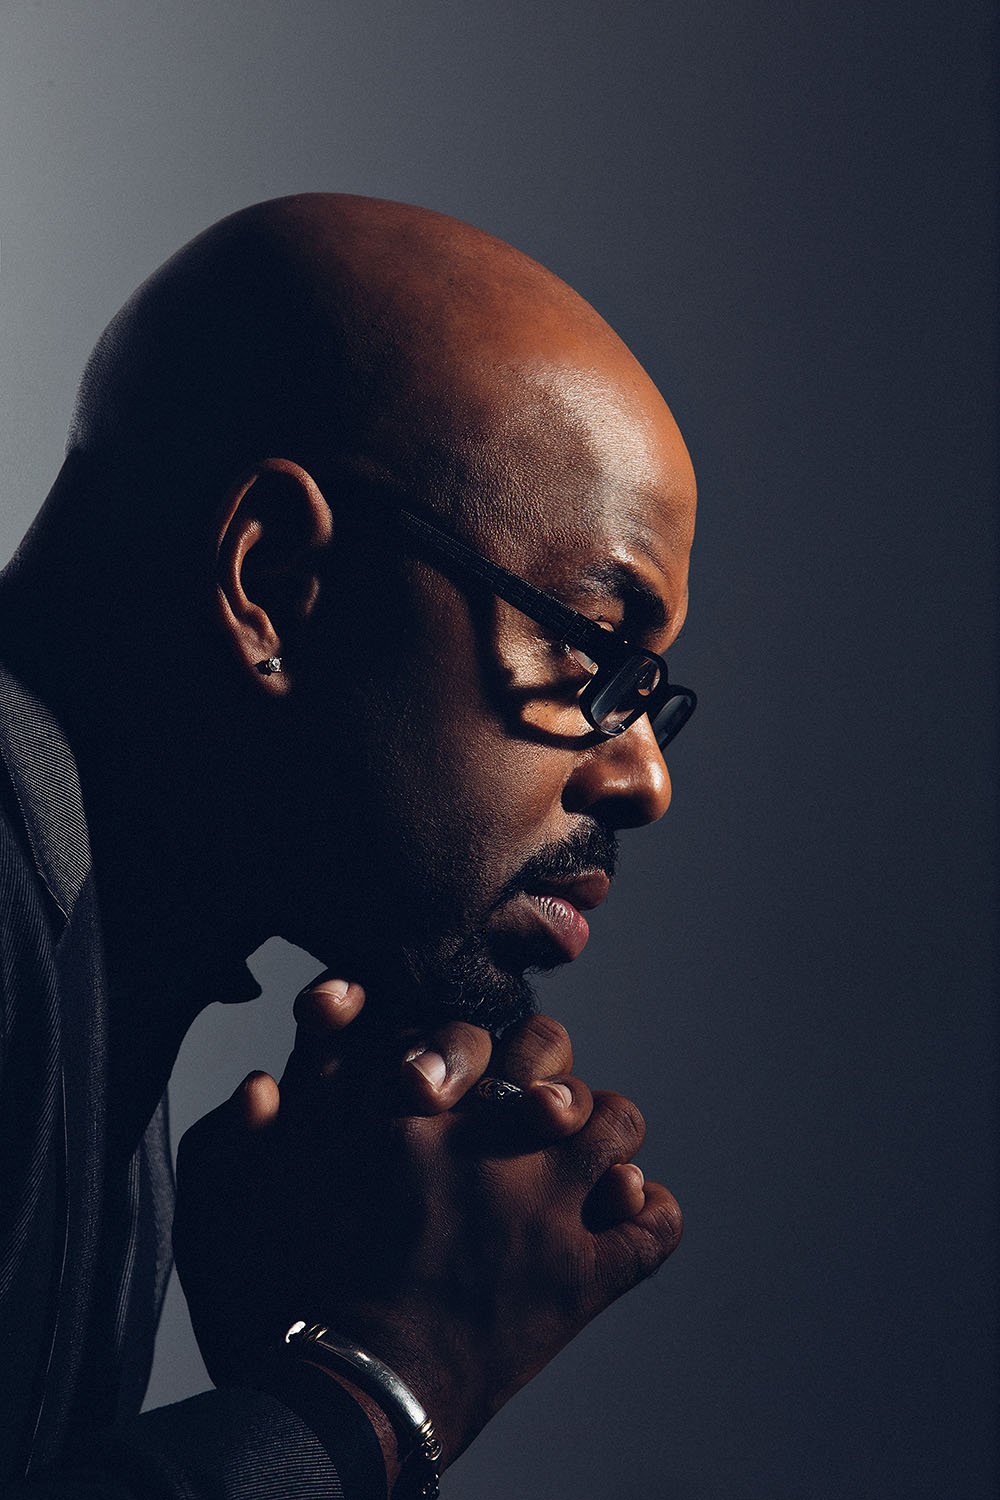 Christian McBride: The Long Birth of a Movement